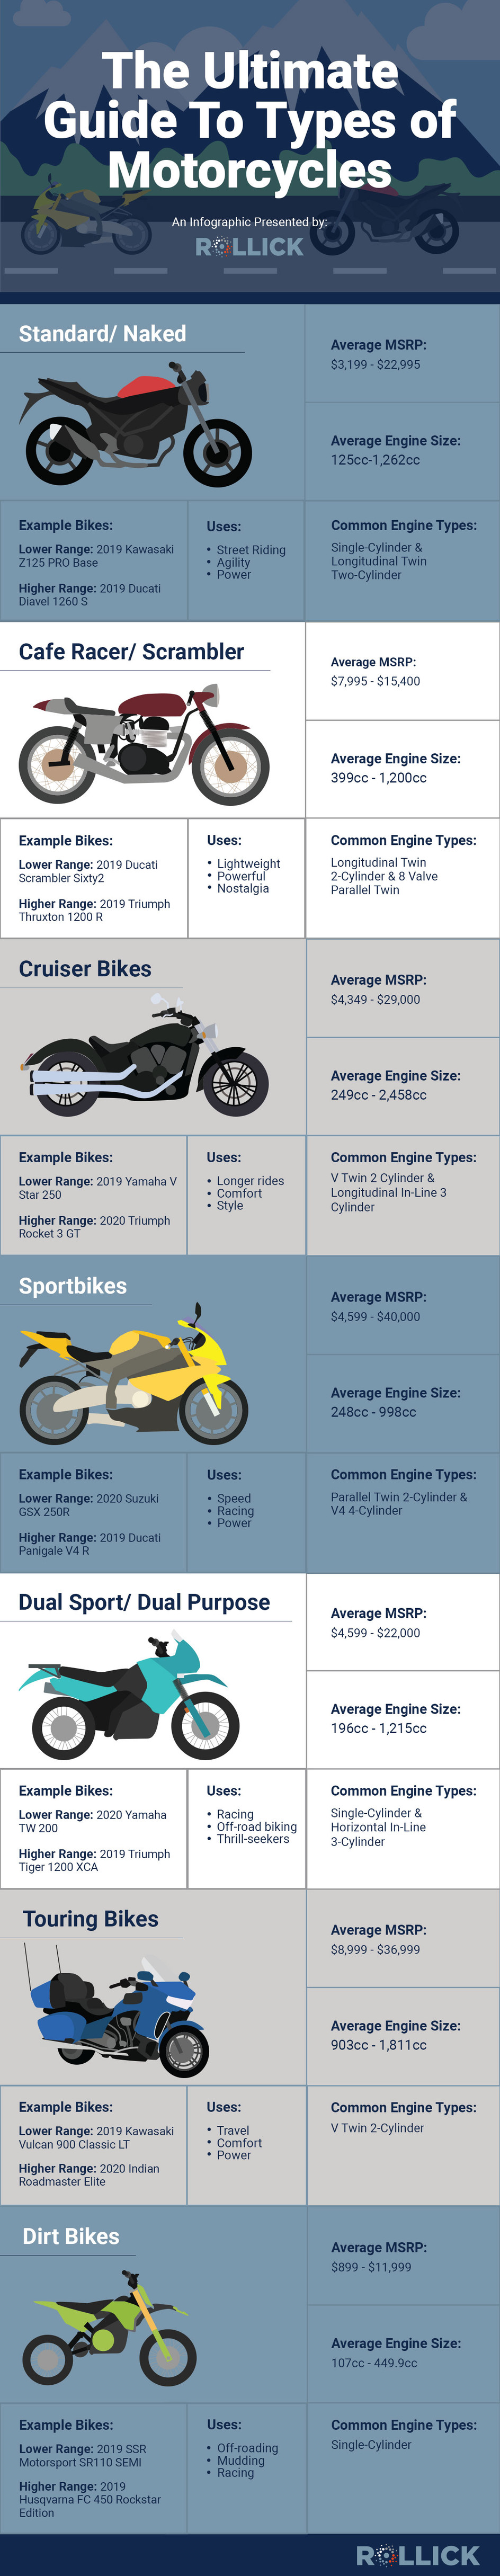 The Ultimate Guide to Types of Motorcycles